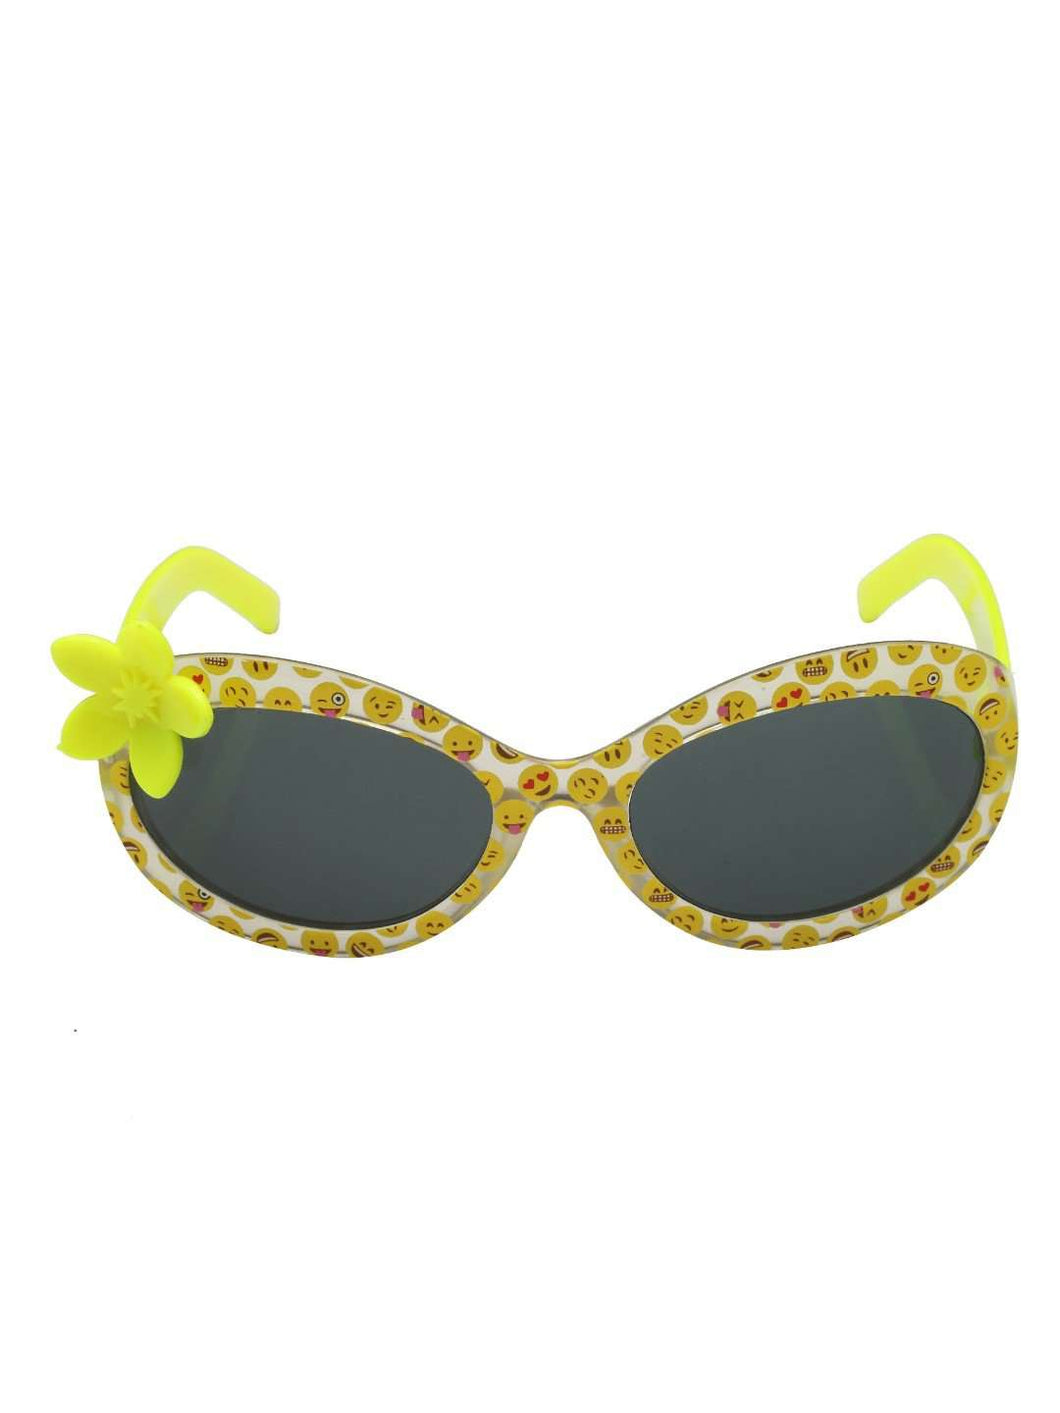 Stol'n Kids Yellow Printed Flower Applique Oval Sunglasses - SWHF